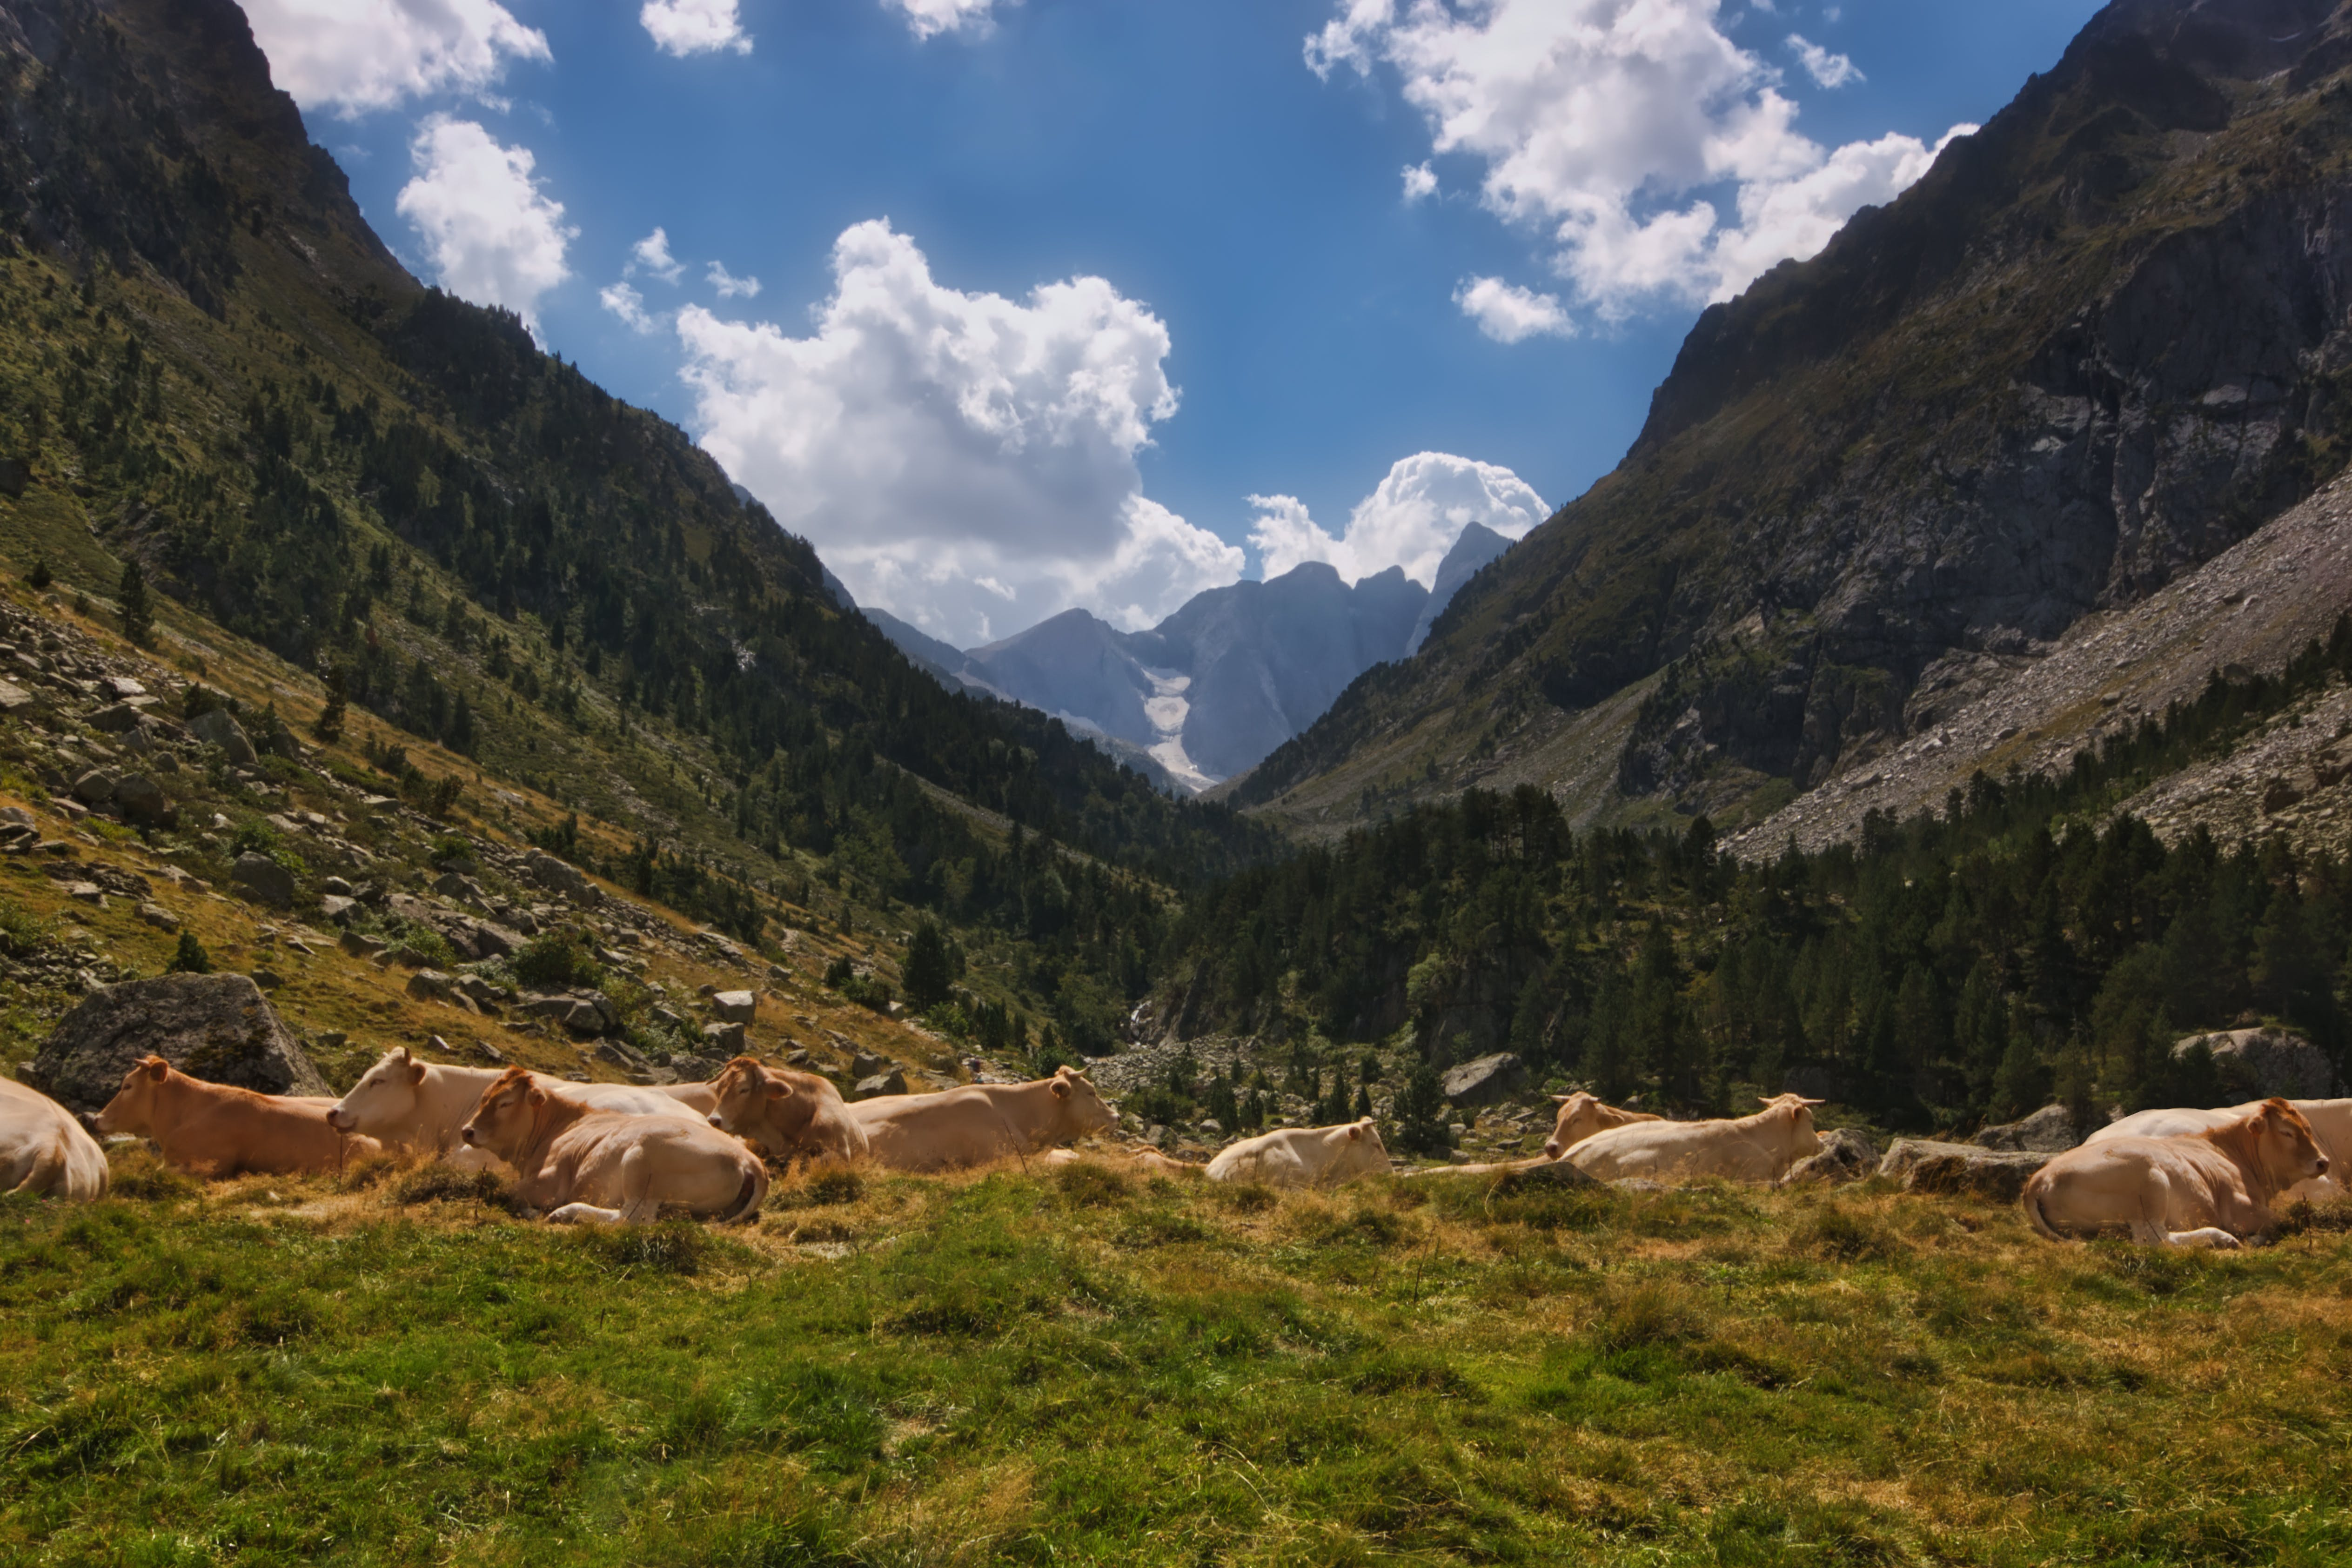 Photo of Brown Cattle On Mountain